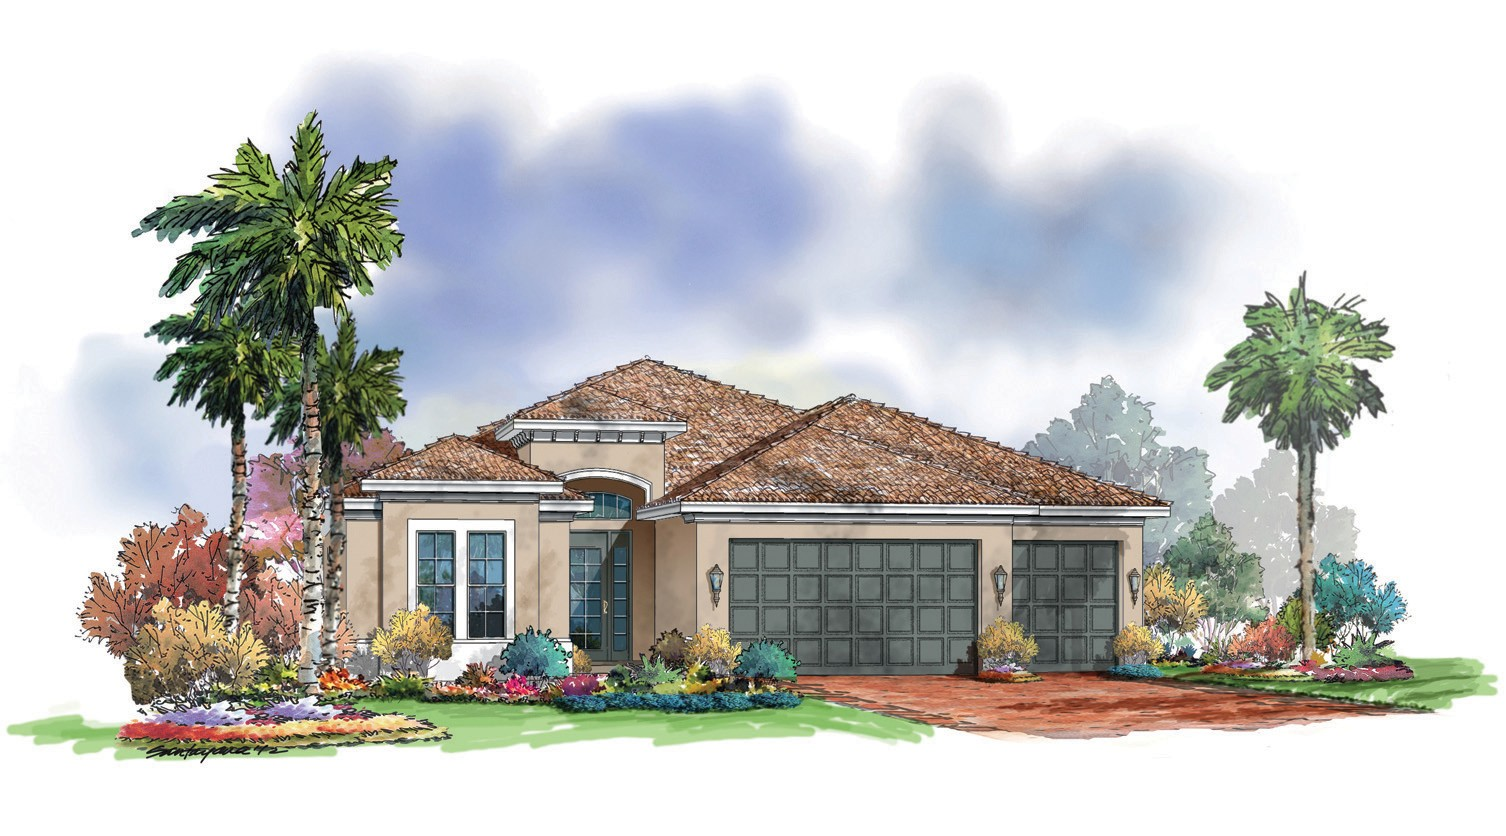 D R Horton New Homes Under Way In Fiddler S Creek Naples Florida Weekly